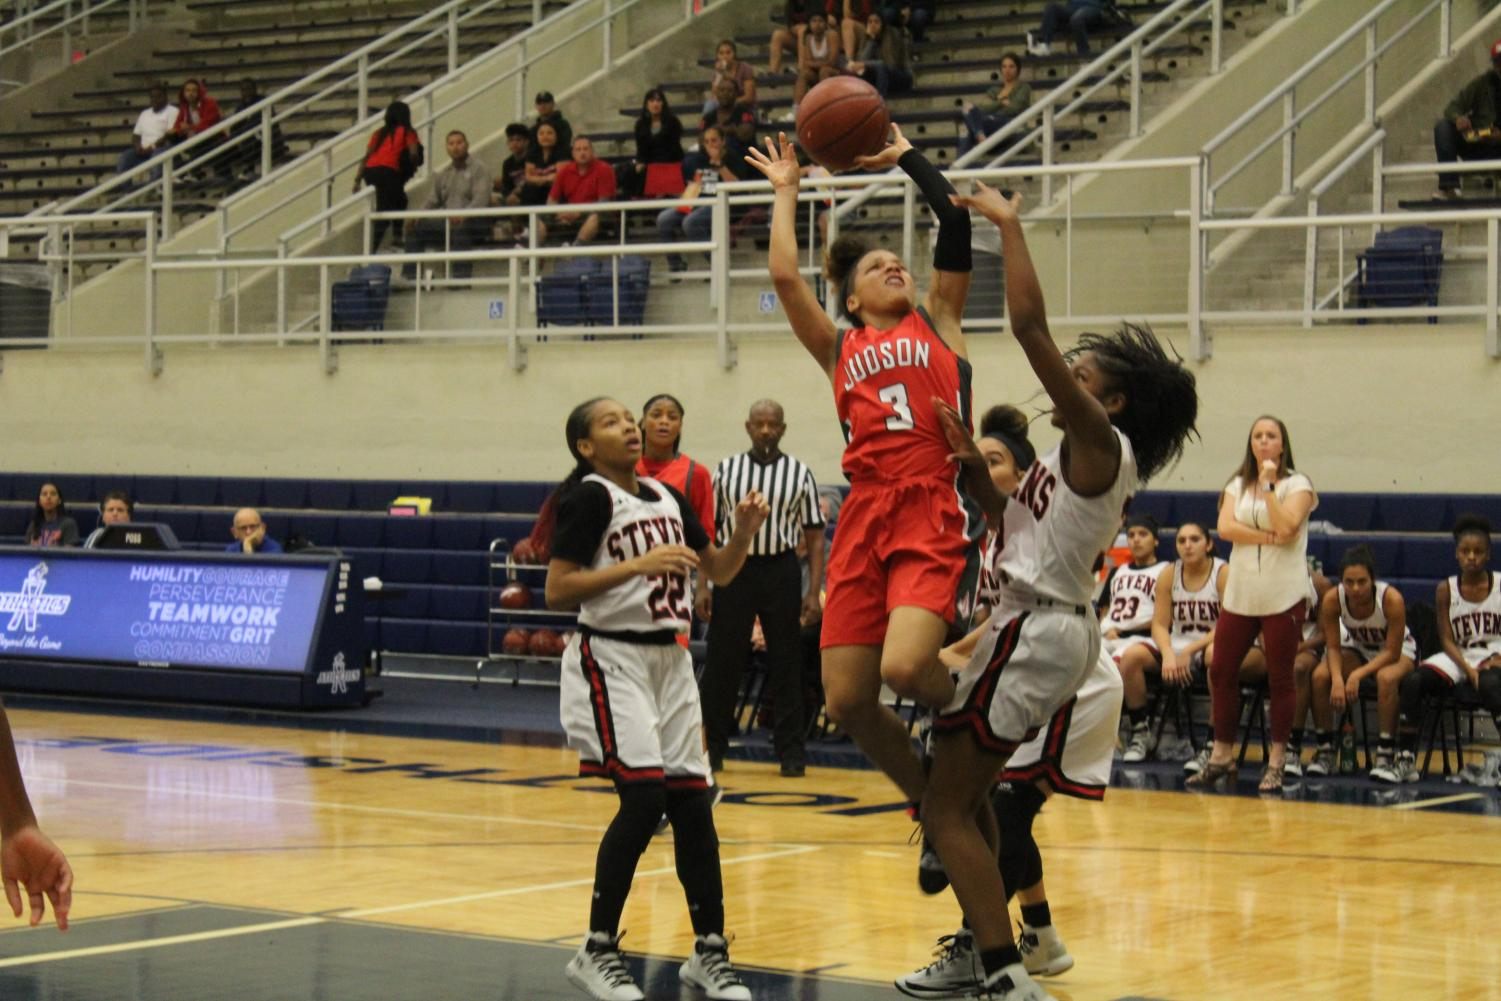 Senior Corina Carter drives in for a layup against the tough Stevens Falcons defense. The Lady Rockets rolled past the Falcons, 70-20.